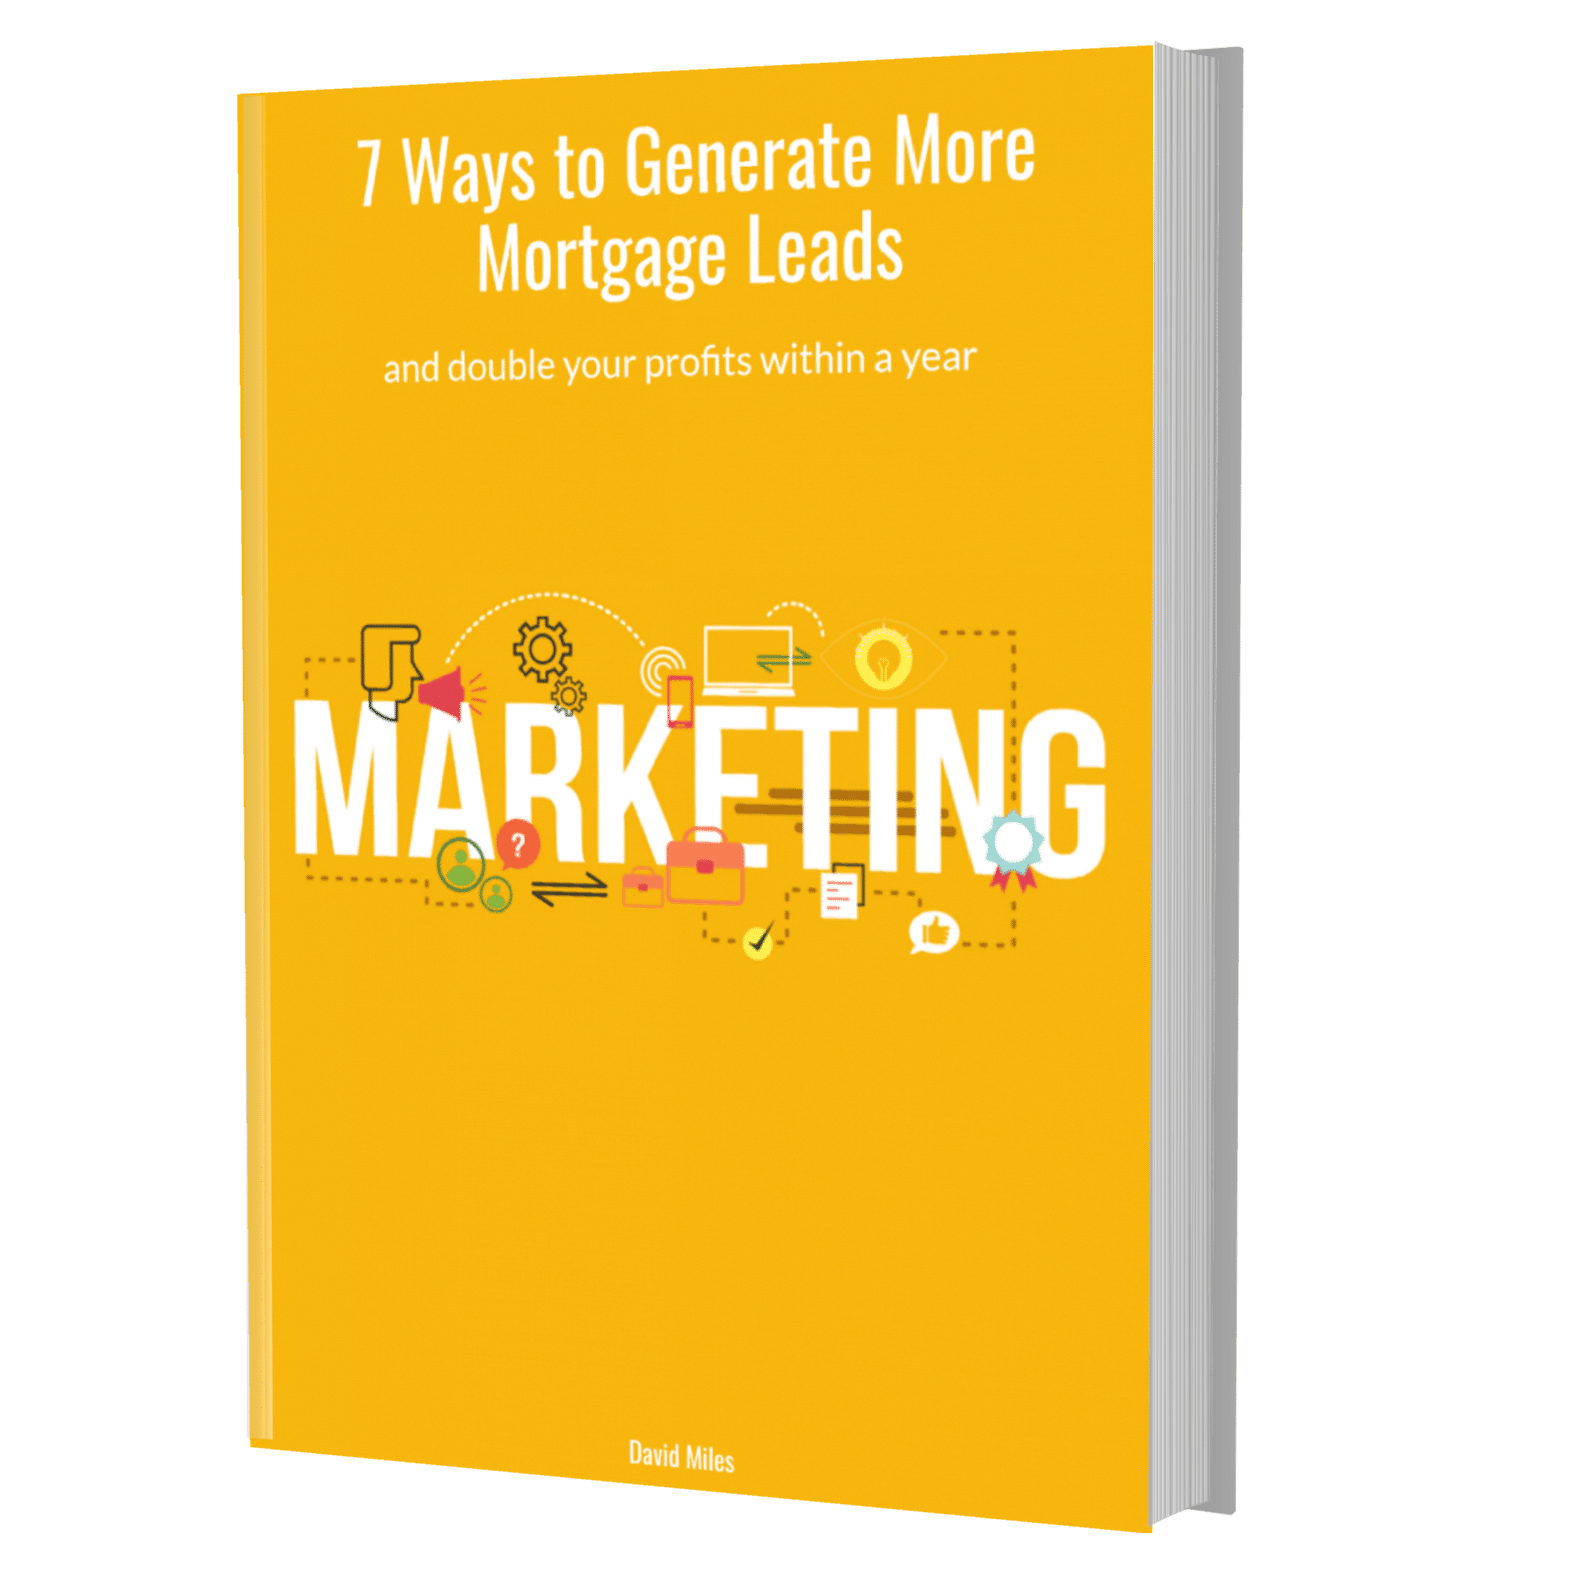 lead generation companies - The Ultimate List of Mortgage Broker Lead Generation Companies